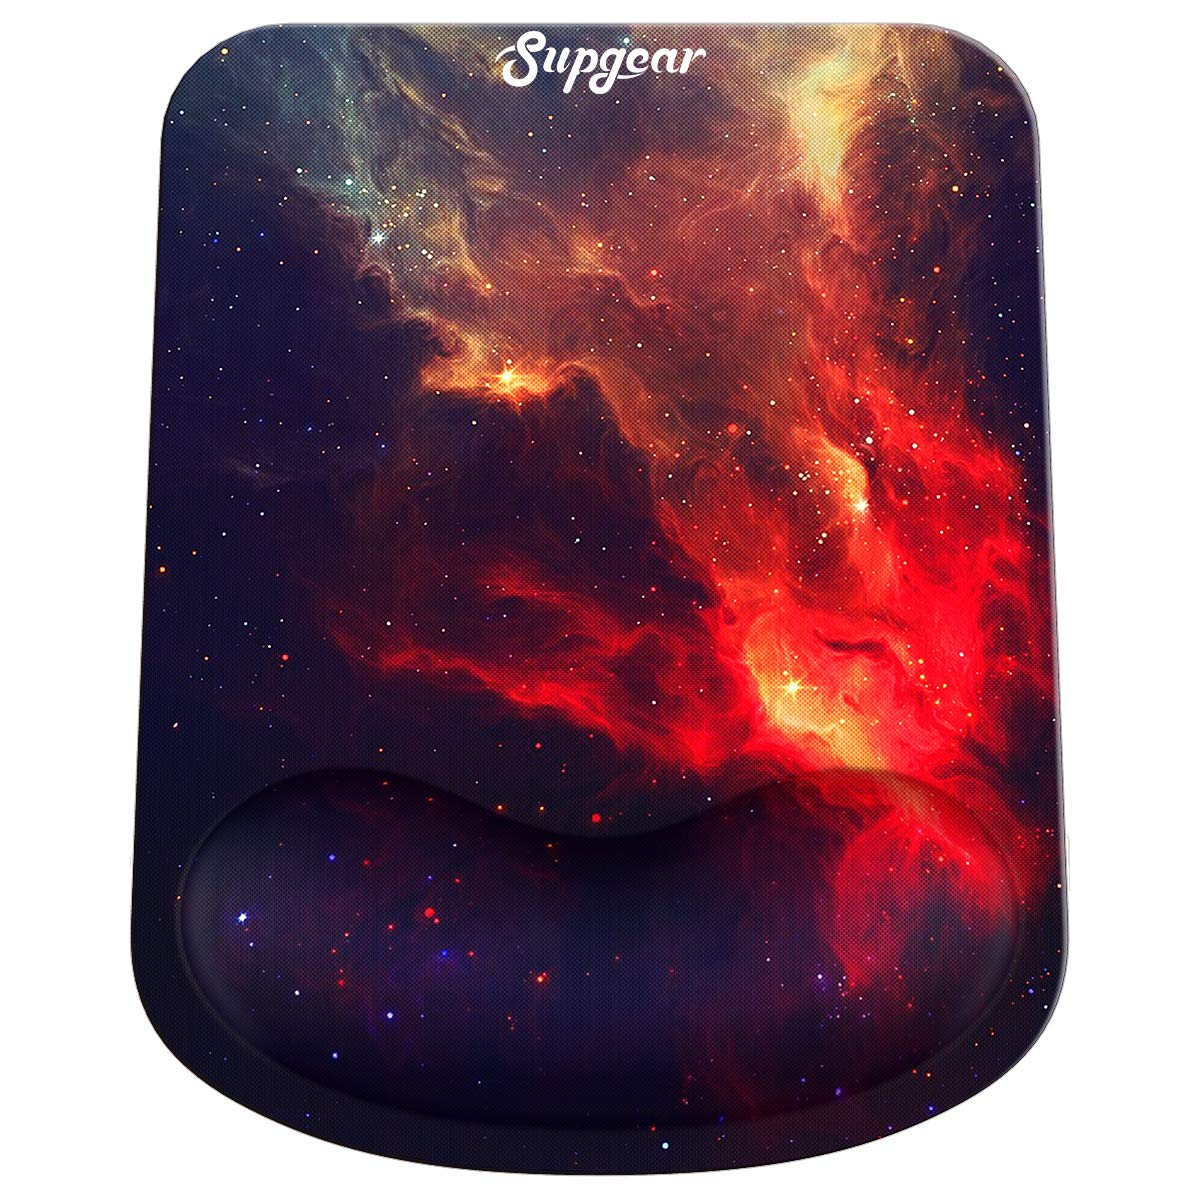 ToLuLu Gel Cute Mouse Pads w//Non-Slip Rubber Base Mousepad Mouse Pad with Wrist Rest Support Ergonomic Mouse Wrist Rest Pad for Laptop Computer Home Office Working Gaming Pain Relief Nebula Galaxy